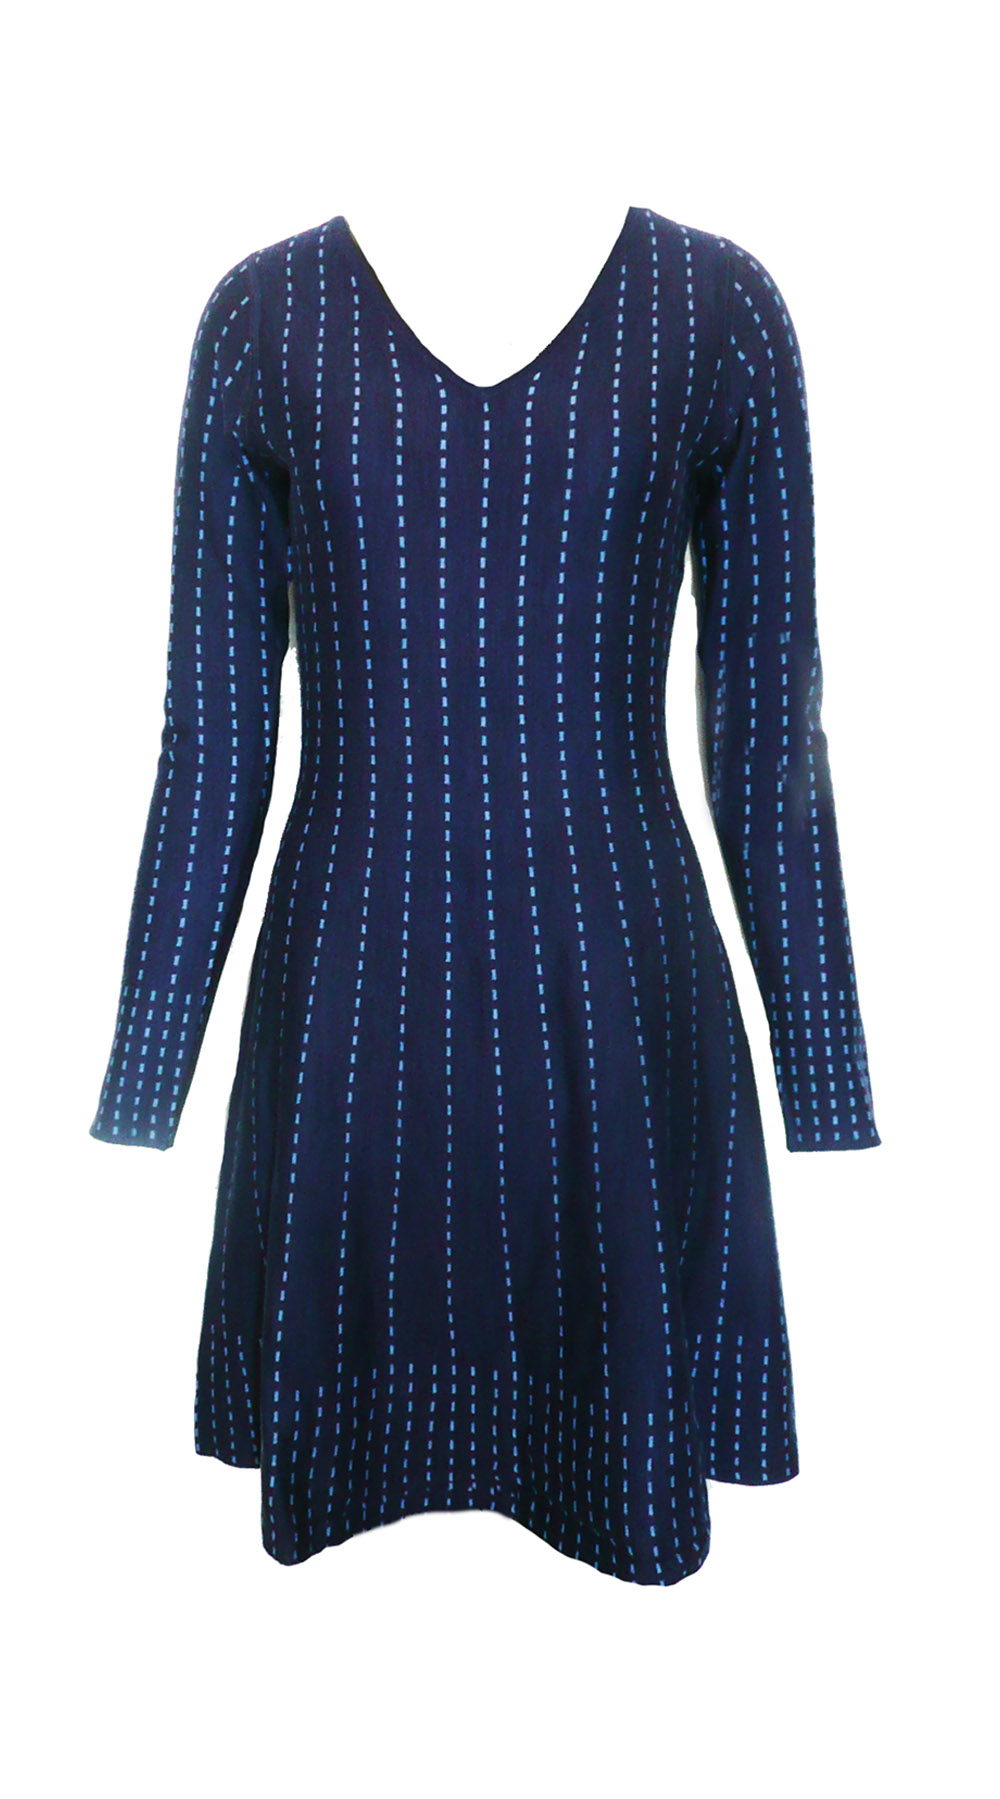 dress fit flare navy dash.jpg